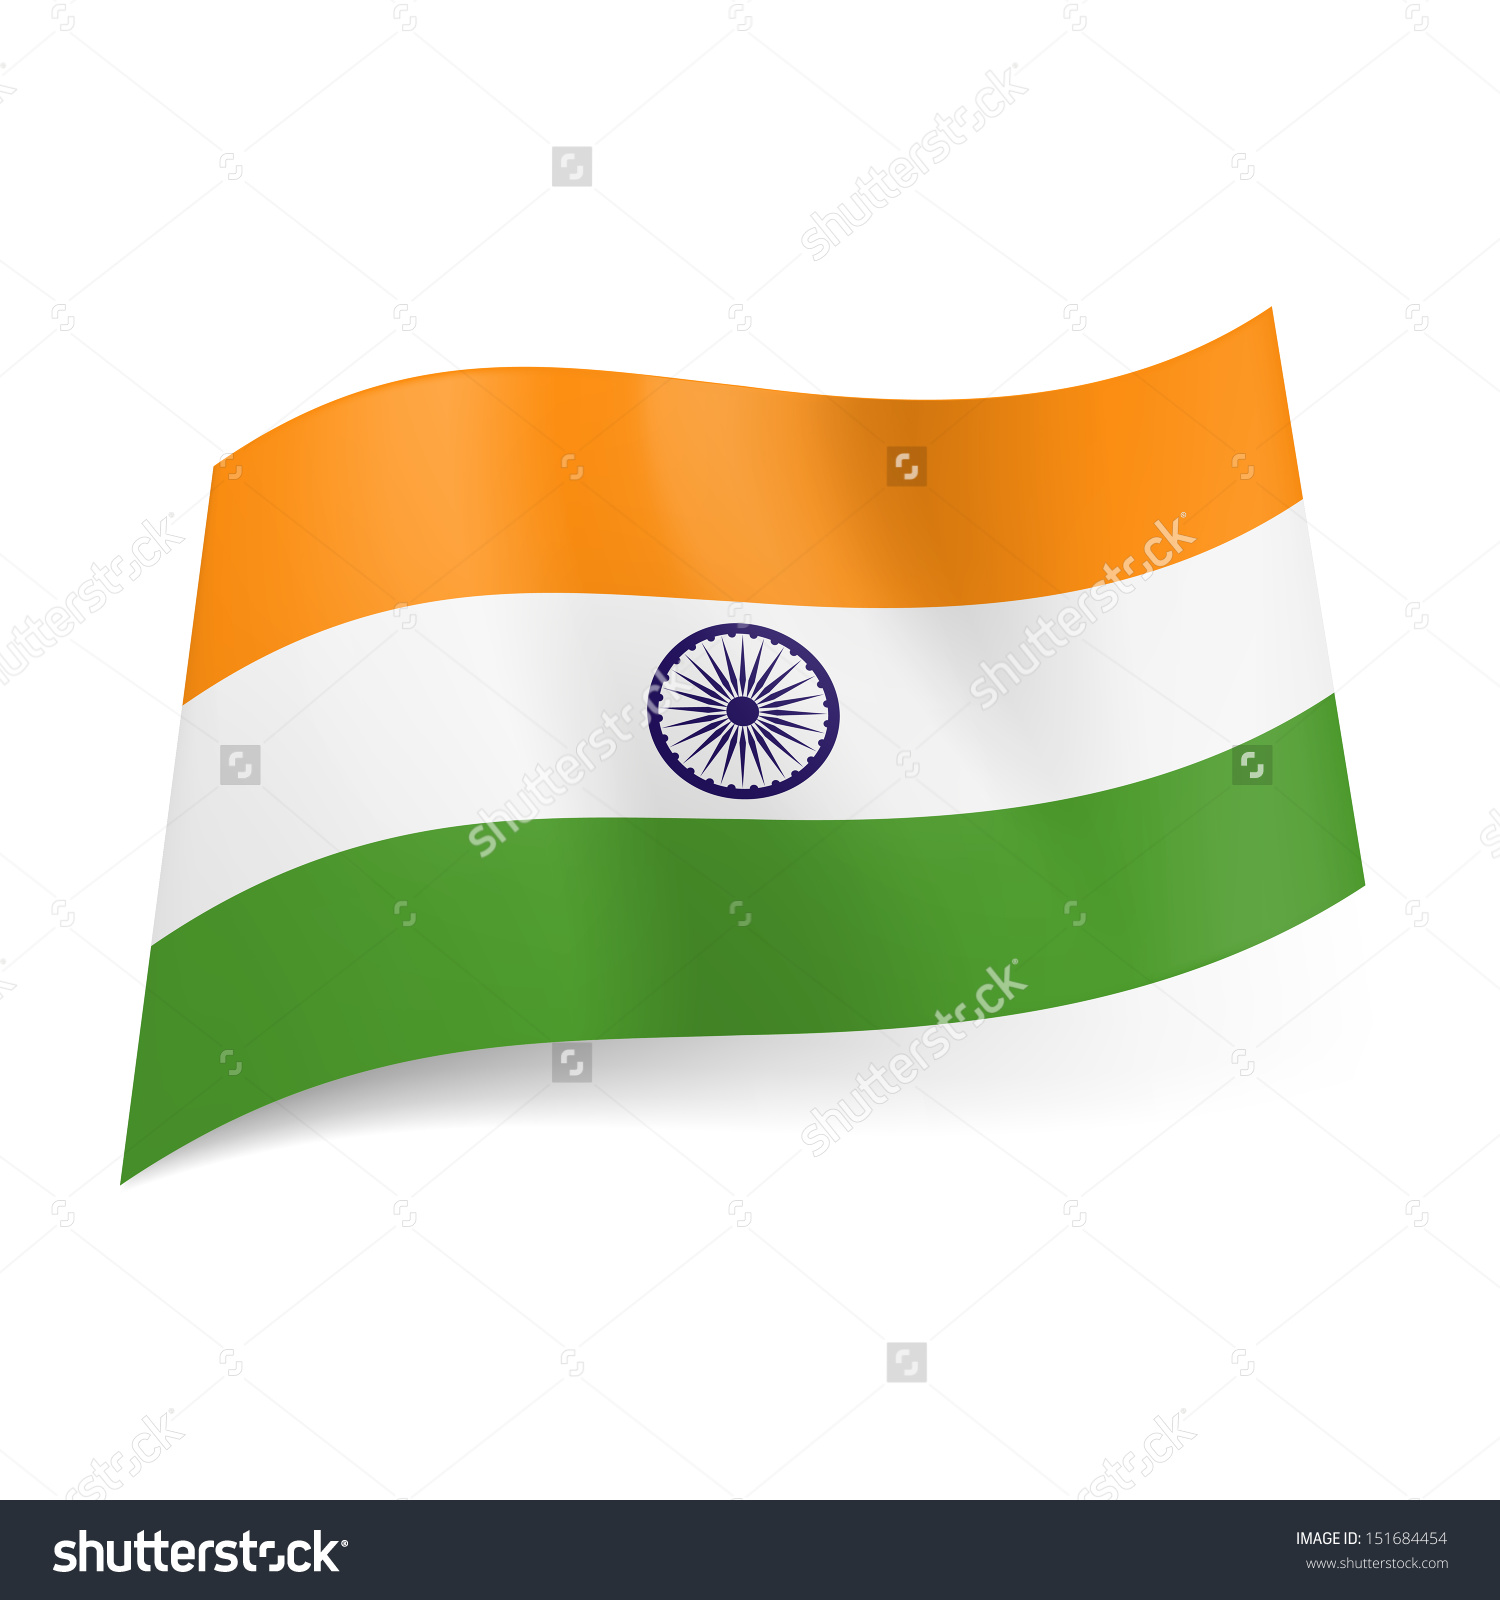 Green White Orange Flags of nations